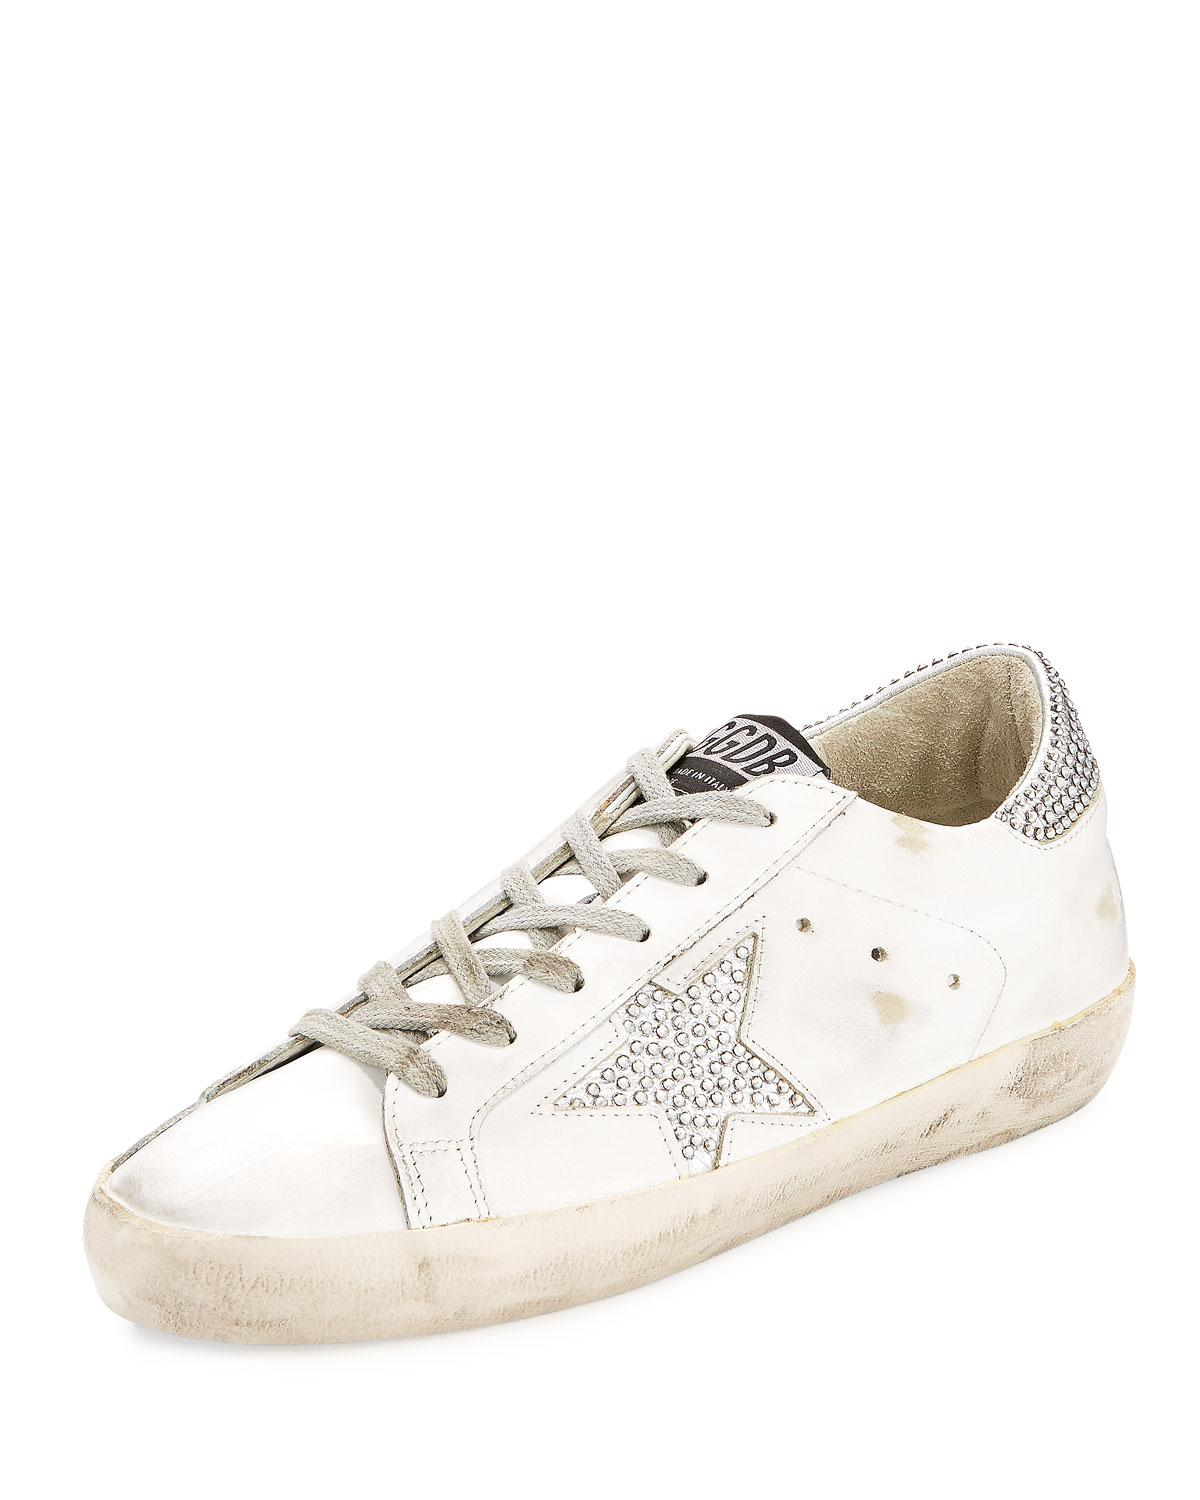 clearance fashion Style Golden Goose Deluxe Brand Superstar crystal-studded sneakers outlet visa payment purchase online Ue6vHHt8H